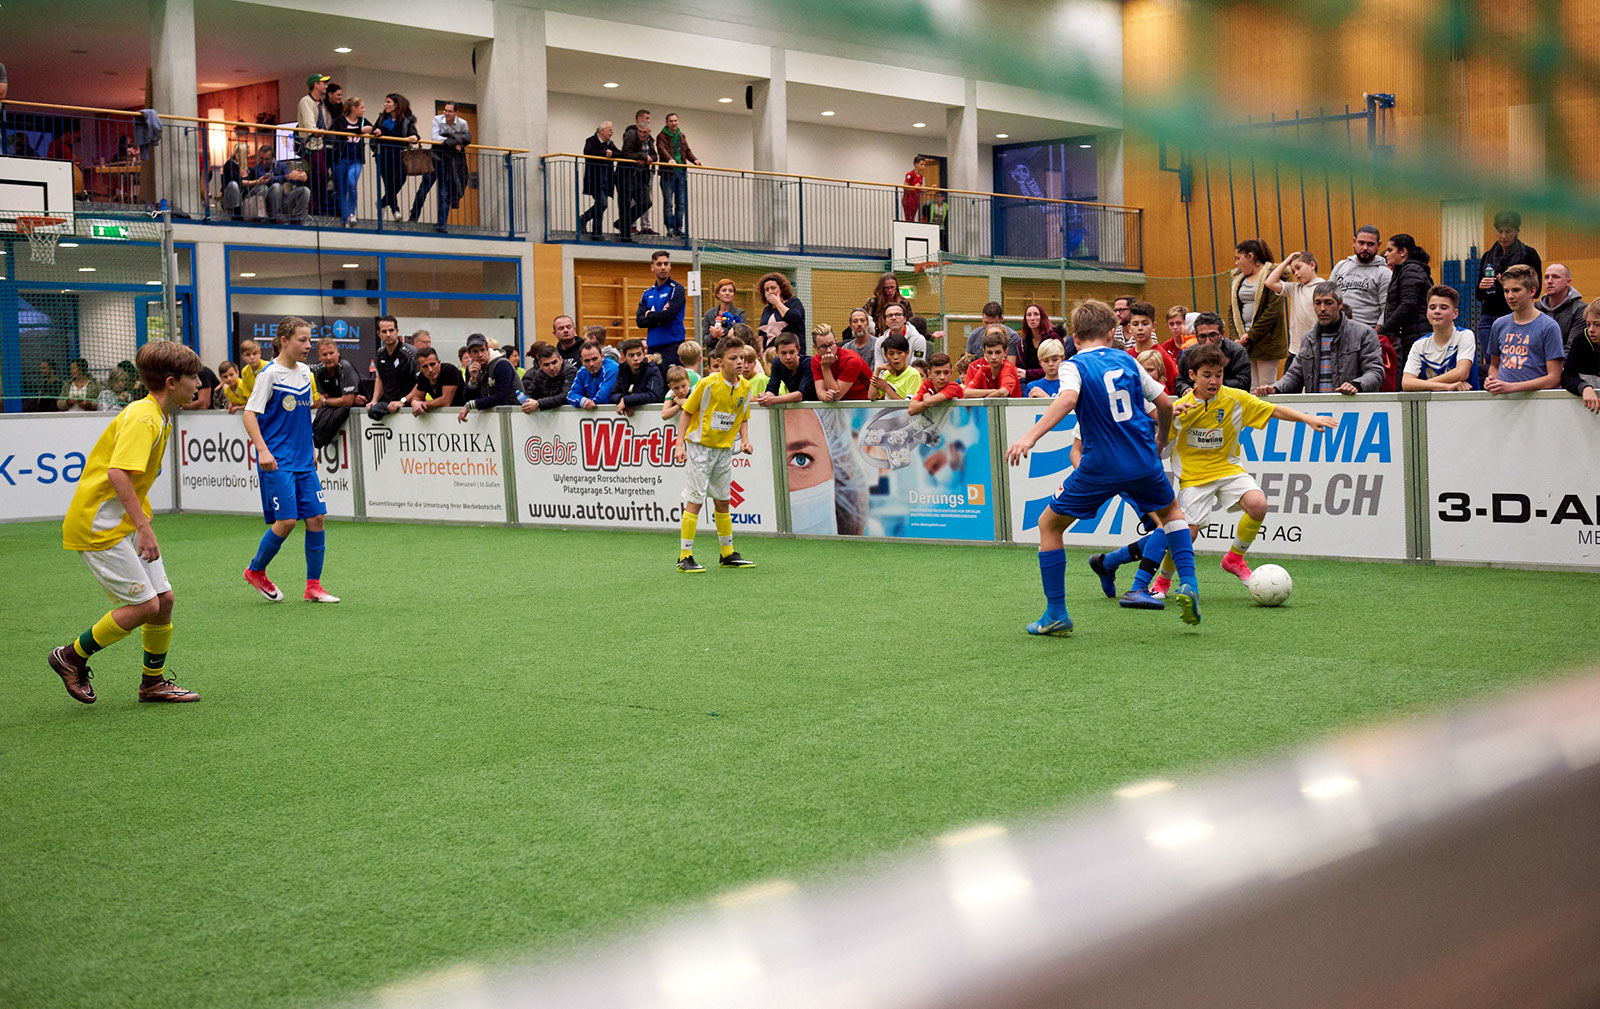 Bodensee-Cup_20171112_173028.jpg